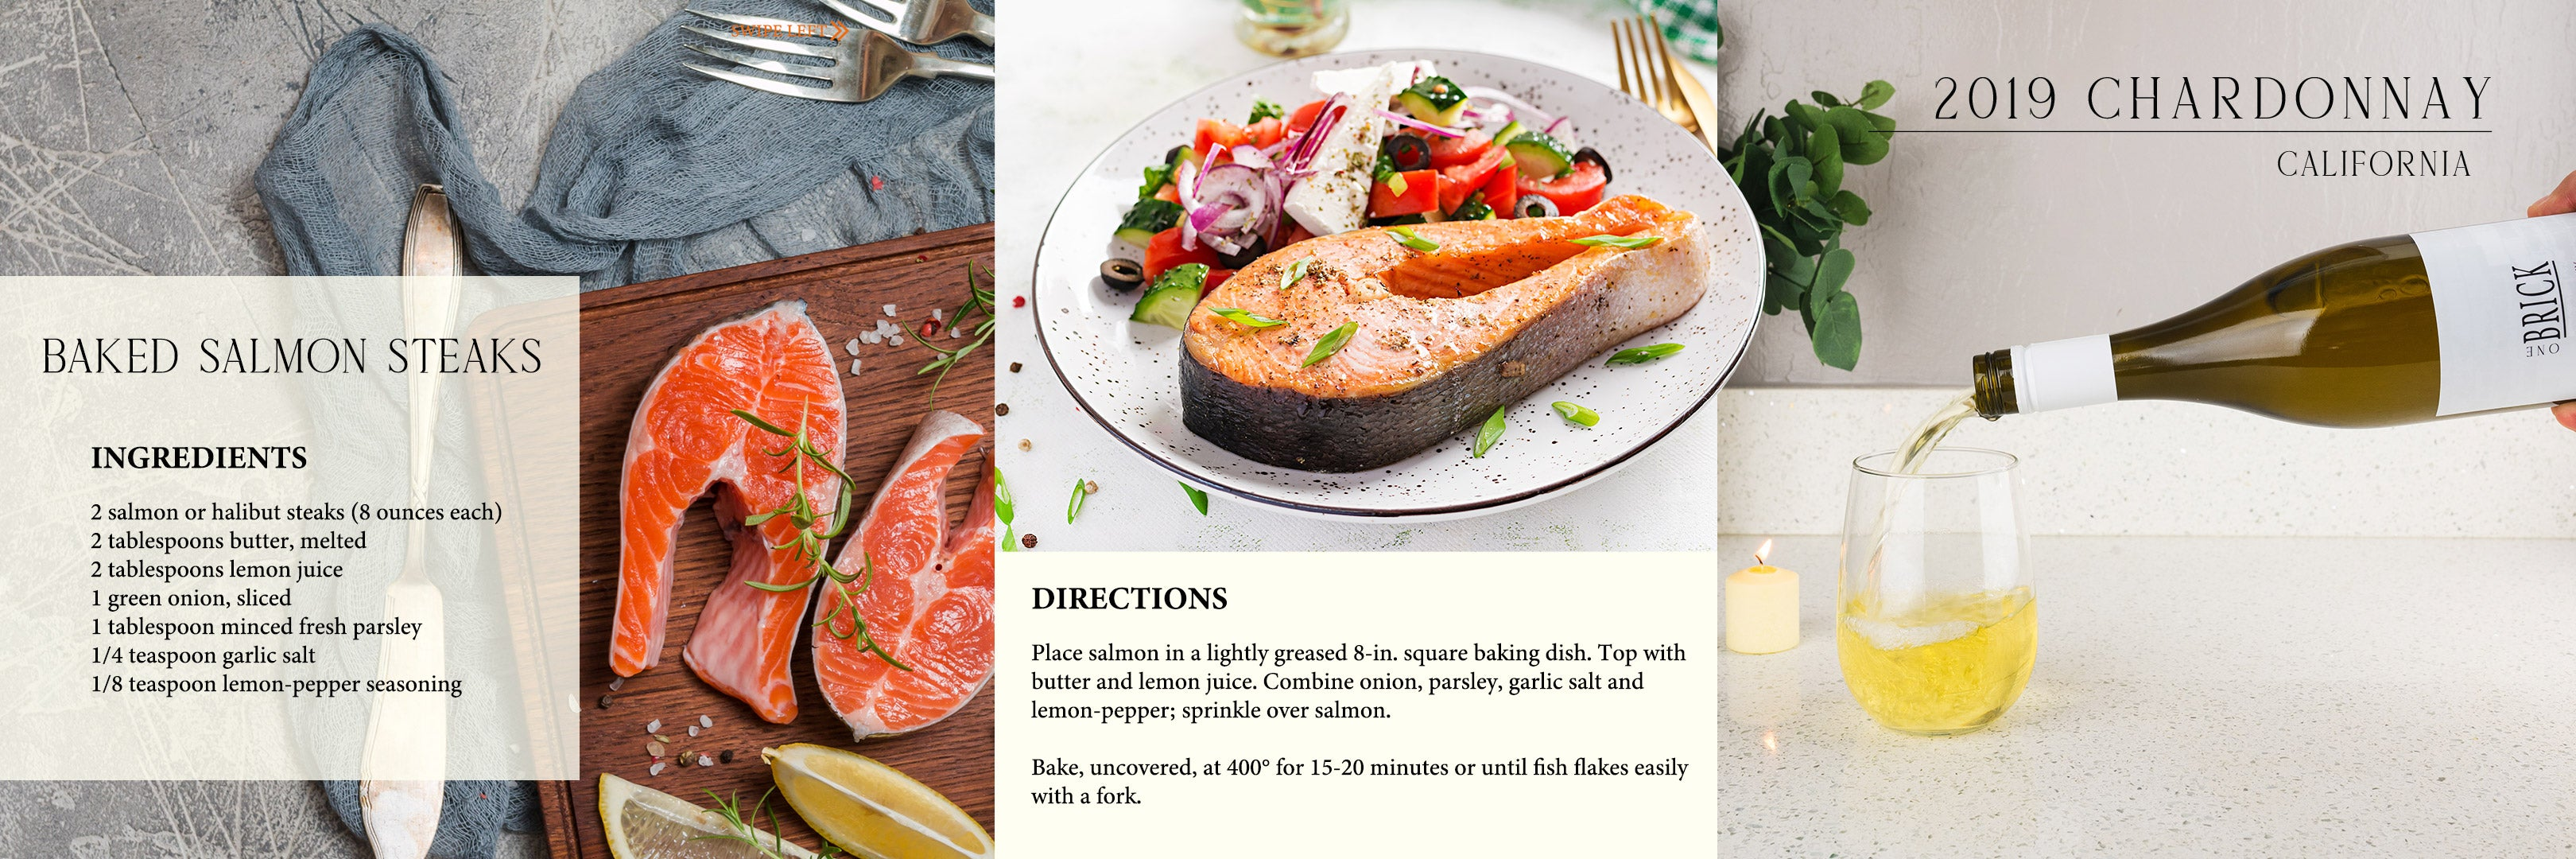 BAKED SALMON STEAKS INFOGRAPHIC